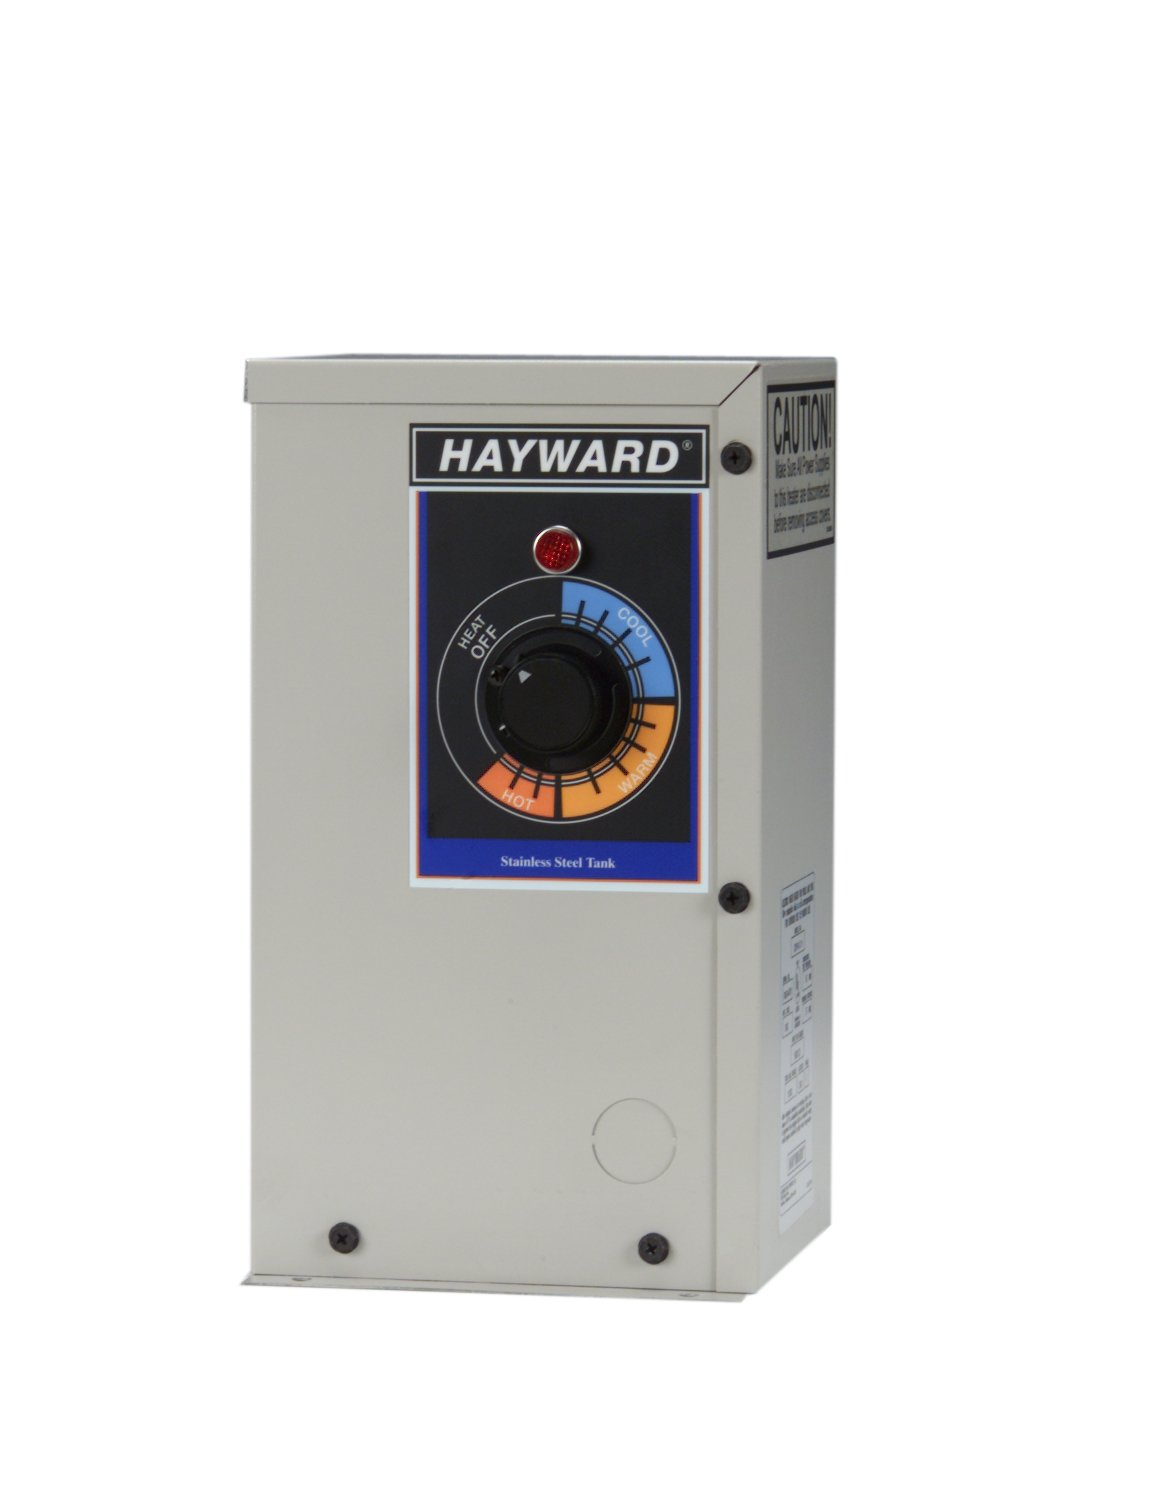 Hayward CSPAXI11 11 Kilowatt Electric Spa Heater by Hayward